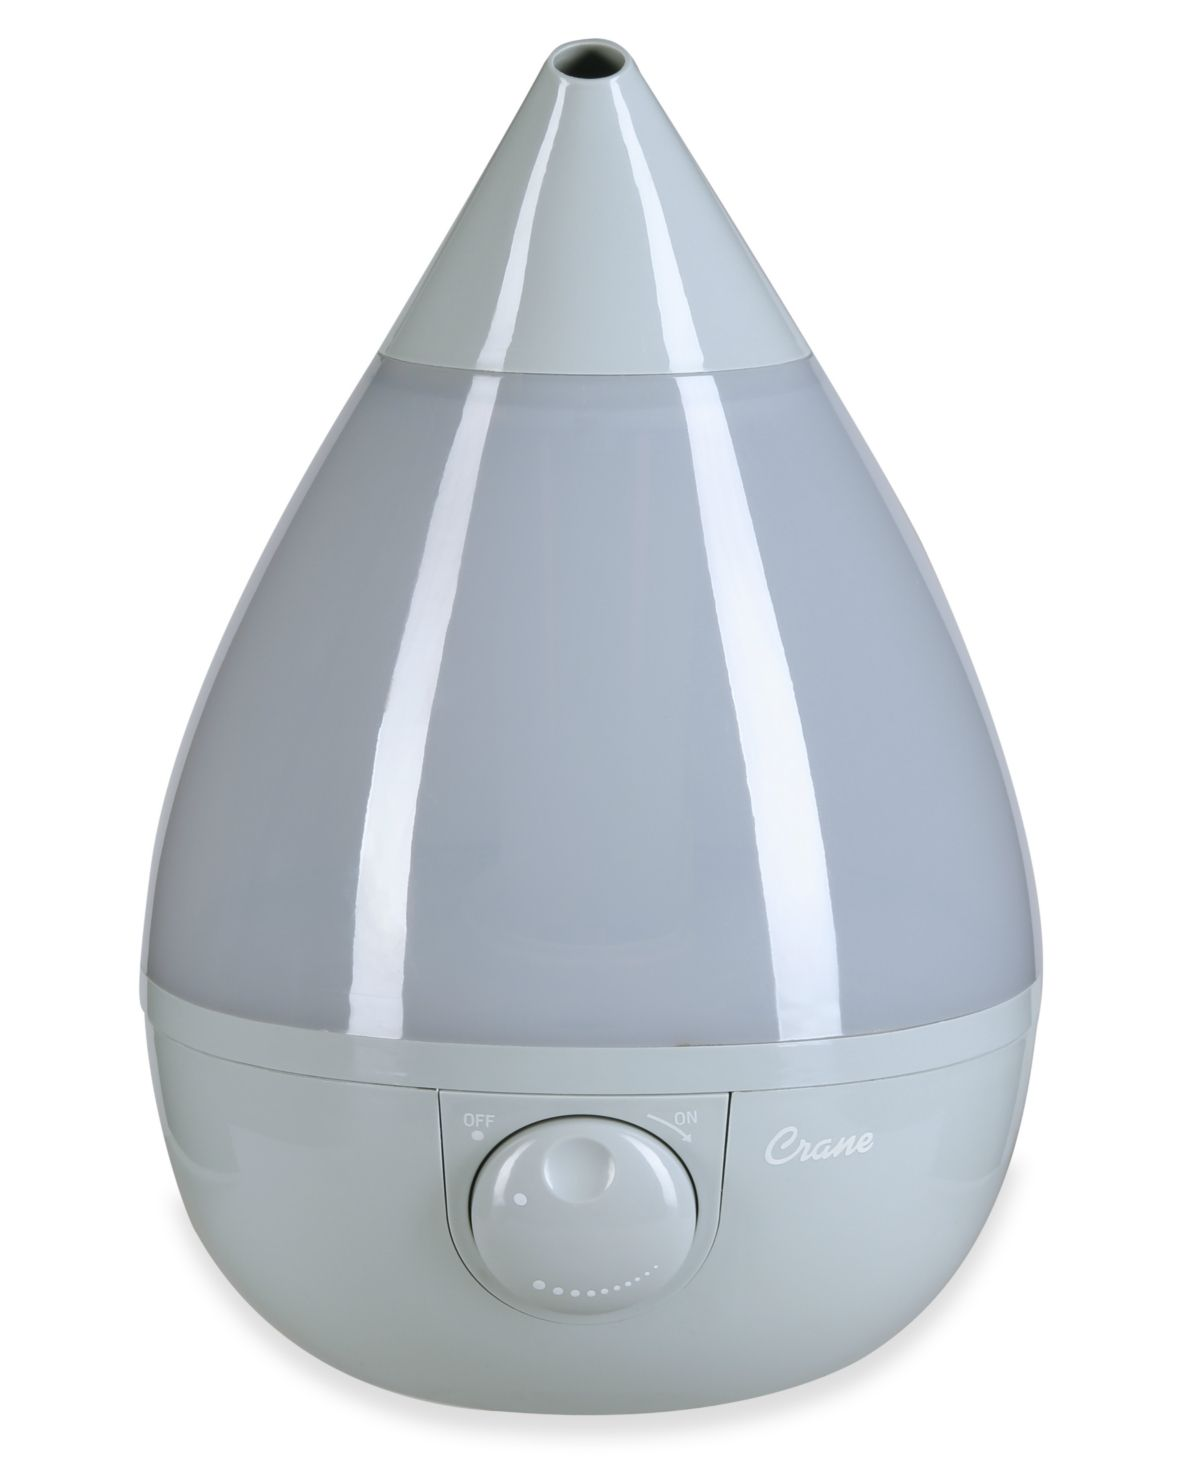 Crane Drop Ultrasonic Cool Mist Humidifiers & Reviews